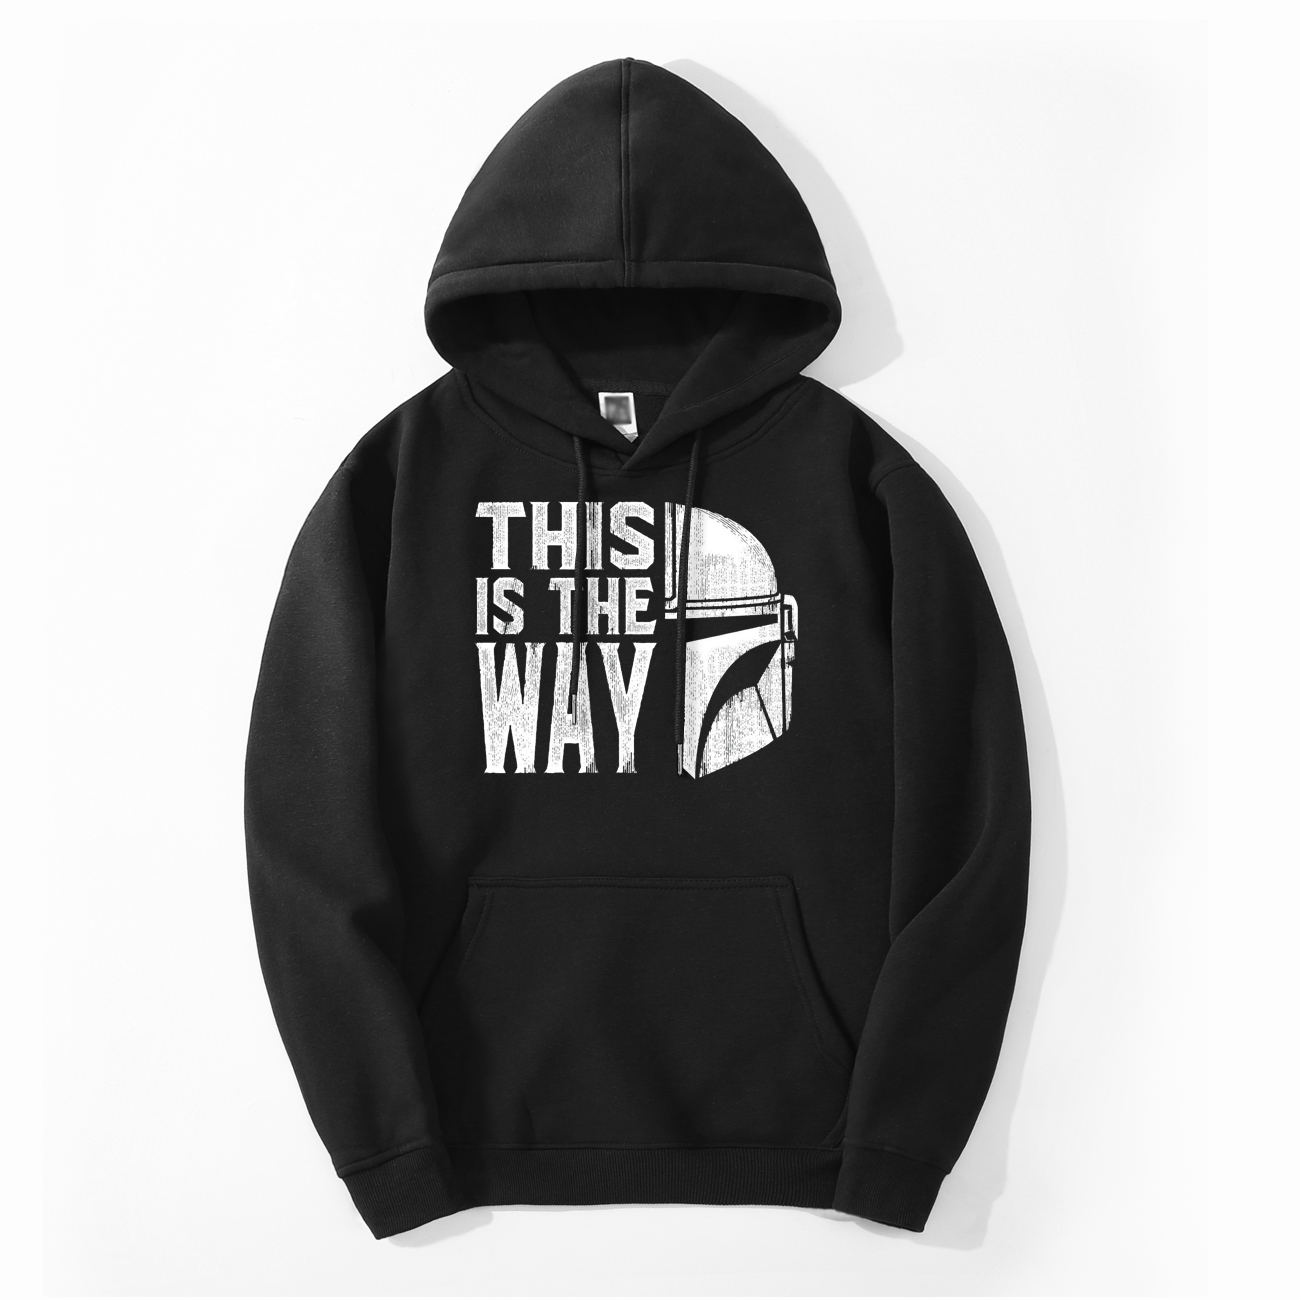 TV Show The Mandalorian Way Men Hoodies Sweatshirt Fleece Autumn Winter Star Wars This Is My Way Streetwear Warm Funny Hoody